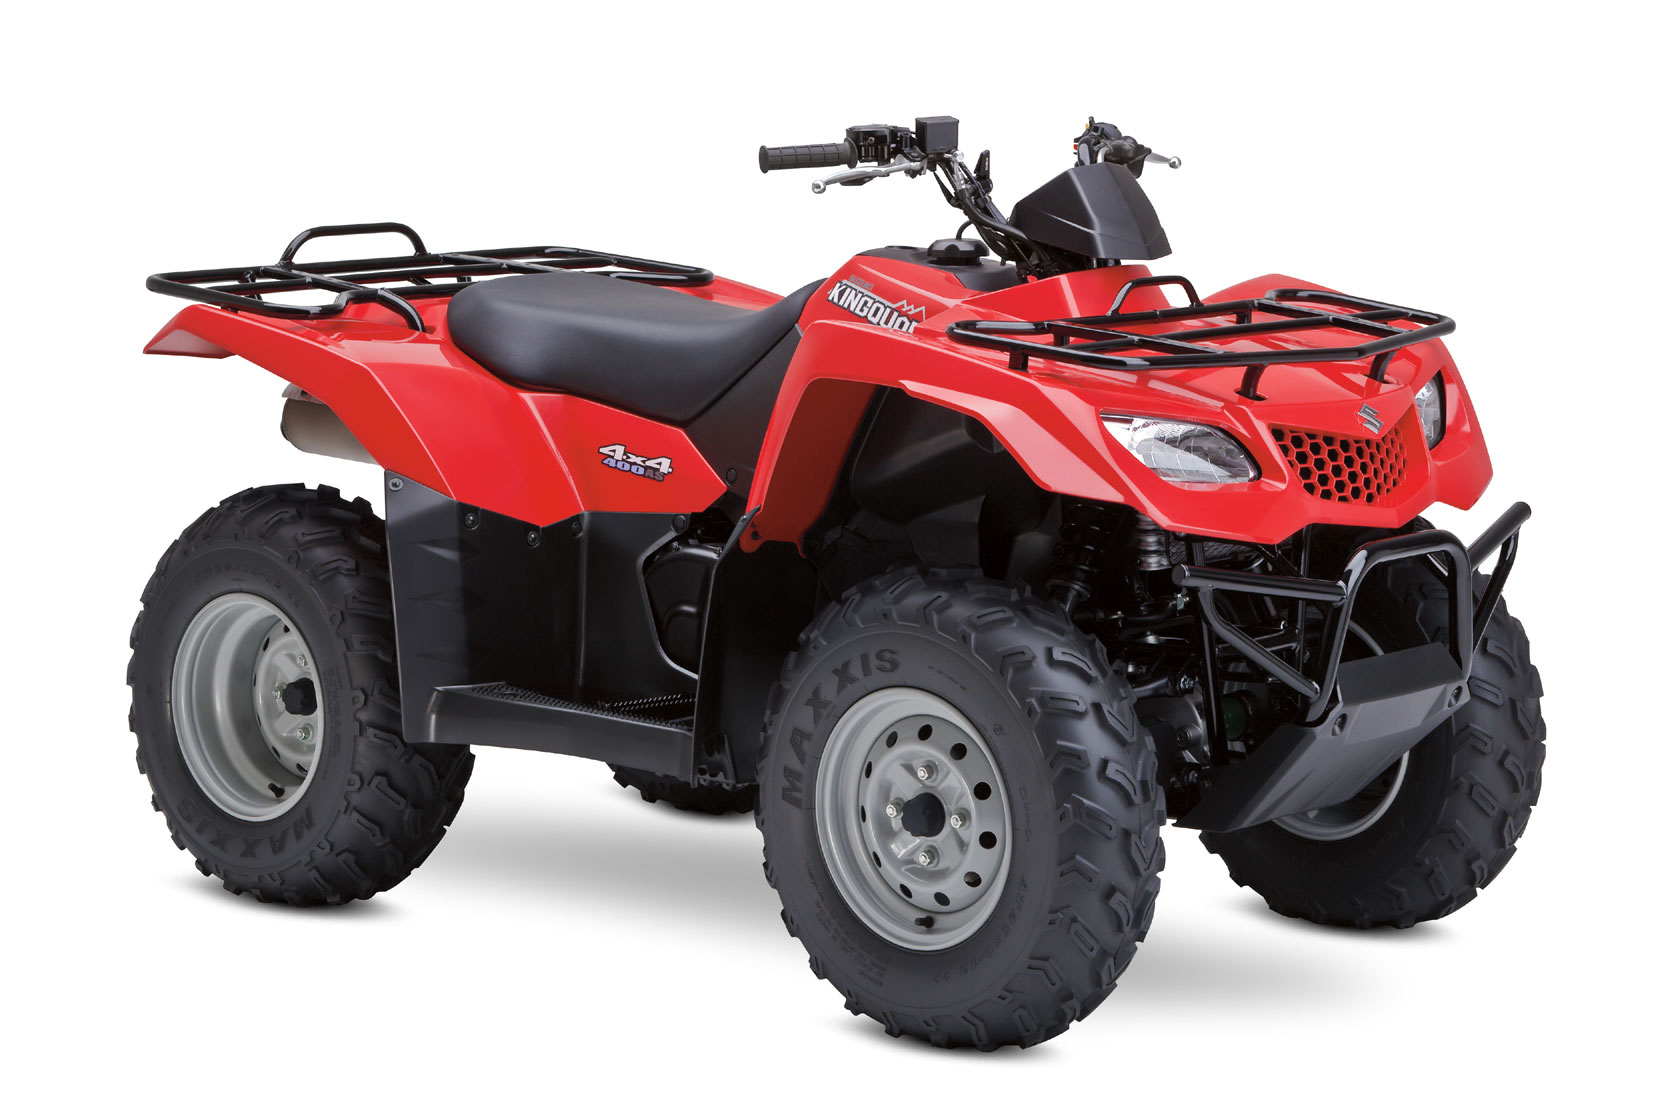 2009 suzuki kingquad 400 as rh totalmotorcycle com suzuki king quad 300 service manual suzuki king quad 300 service manual